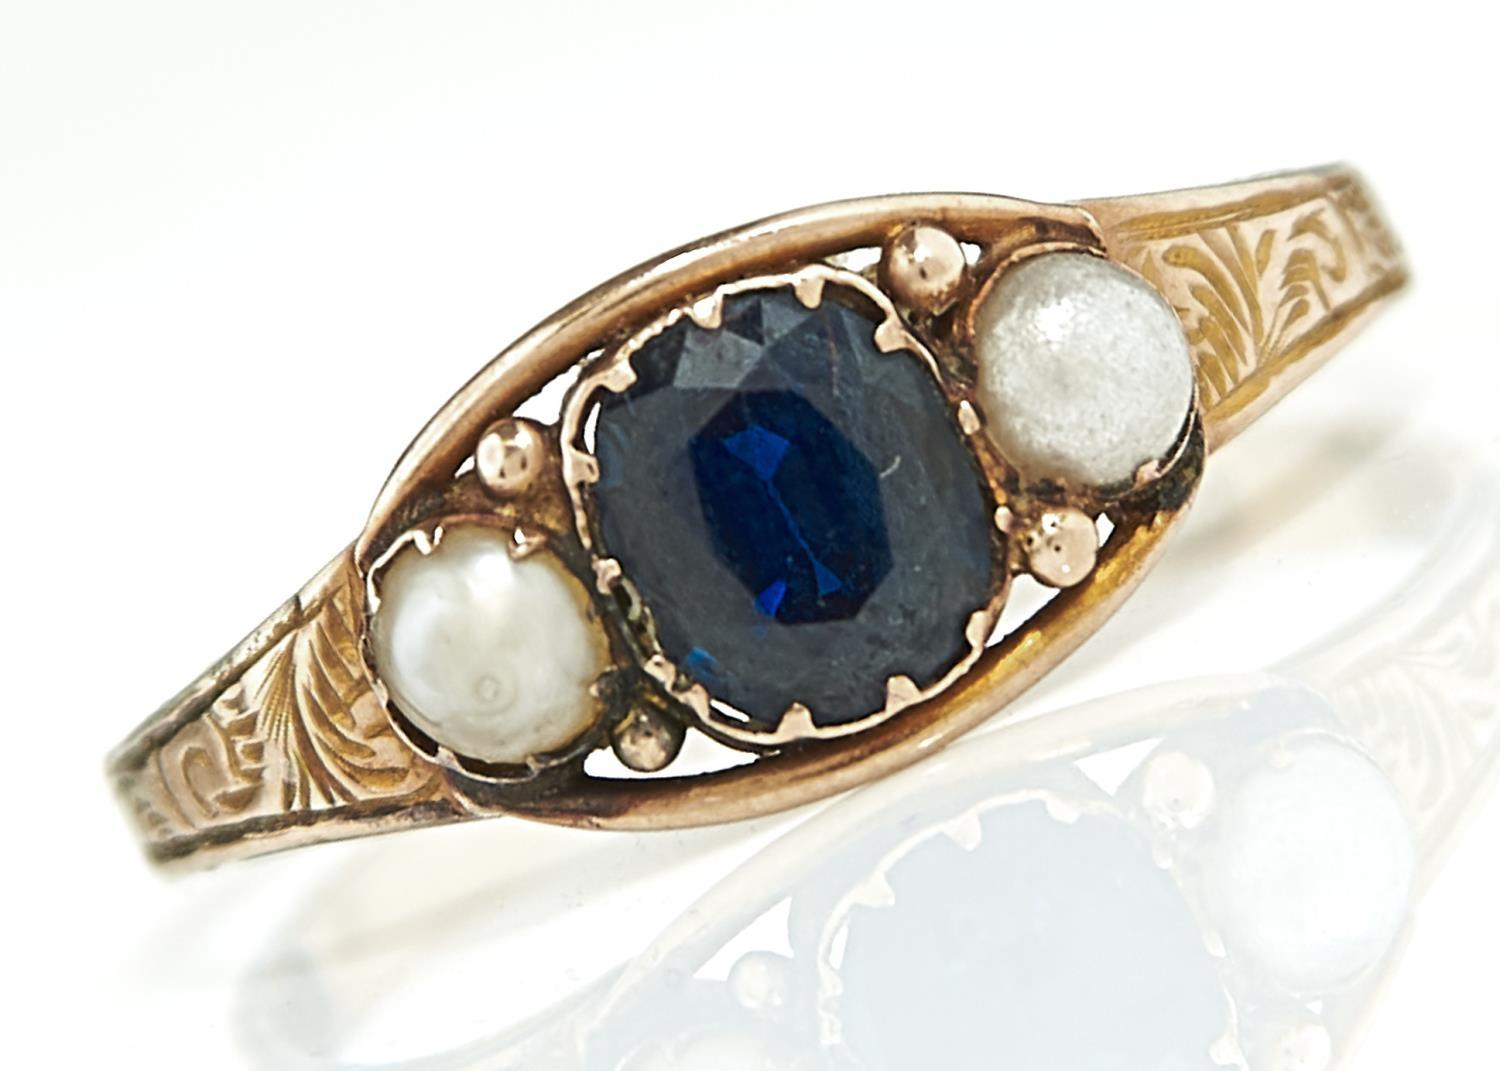 A VICTORIAN SAPPHIRE AND SPLIT PEARL RING IN 12.5CT GOLD BIRMINGHAM 1877, 1.3G, SIZE N Sapphire